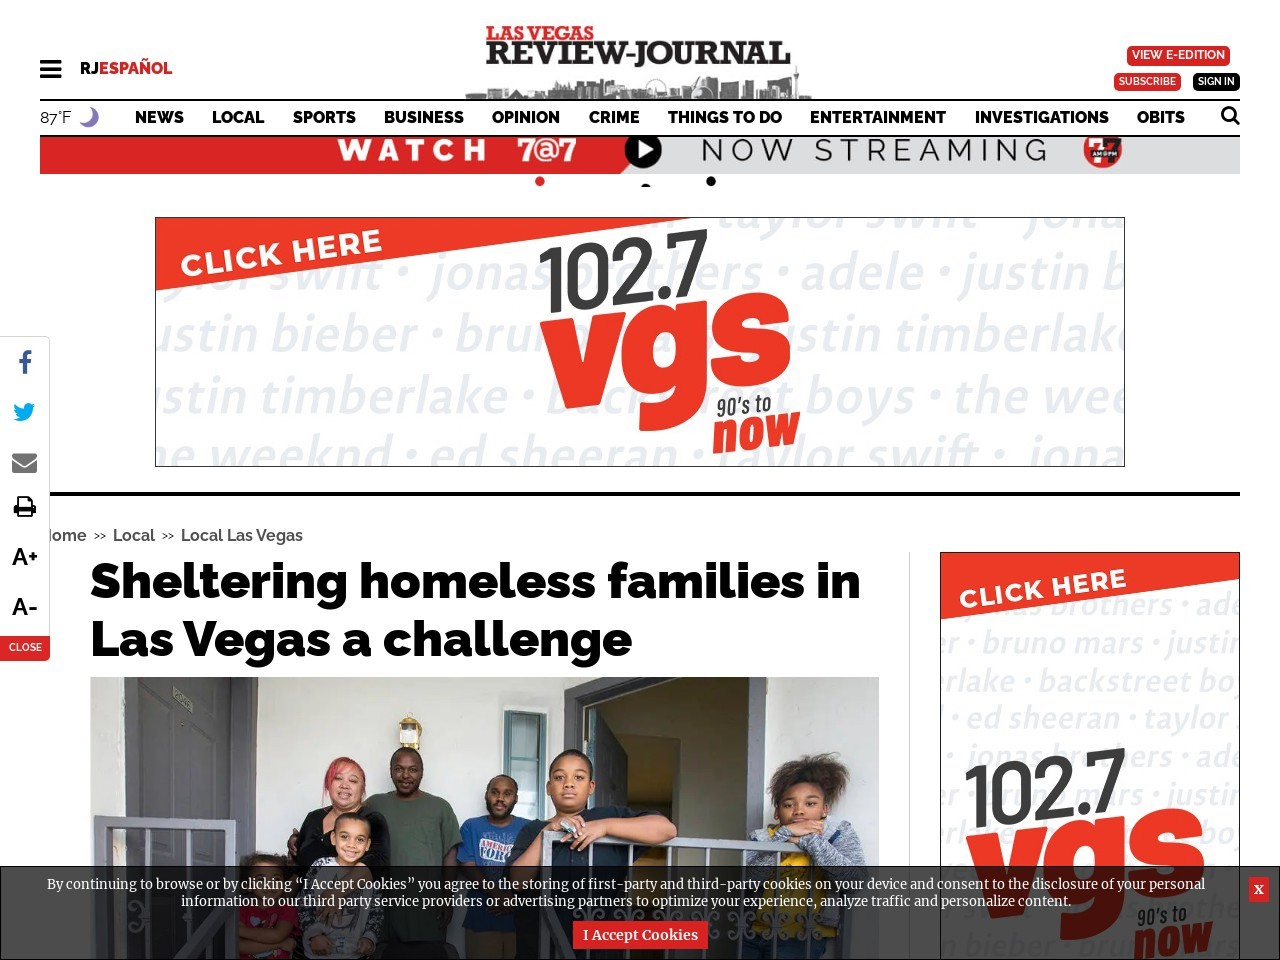 Sheltering homeless families in Las Vegas a challenge